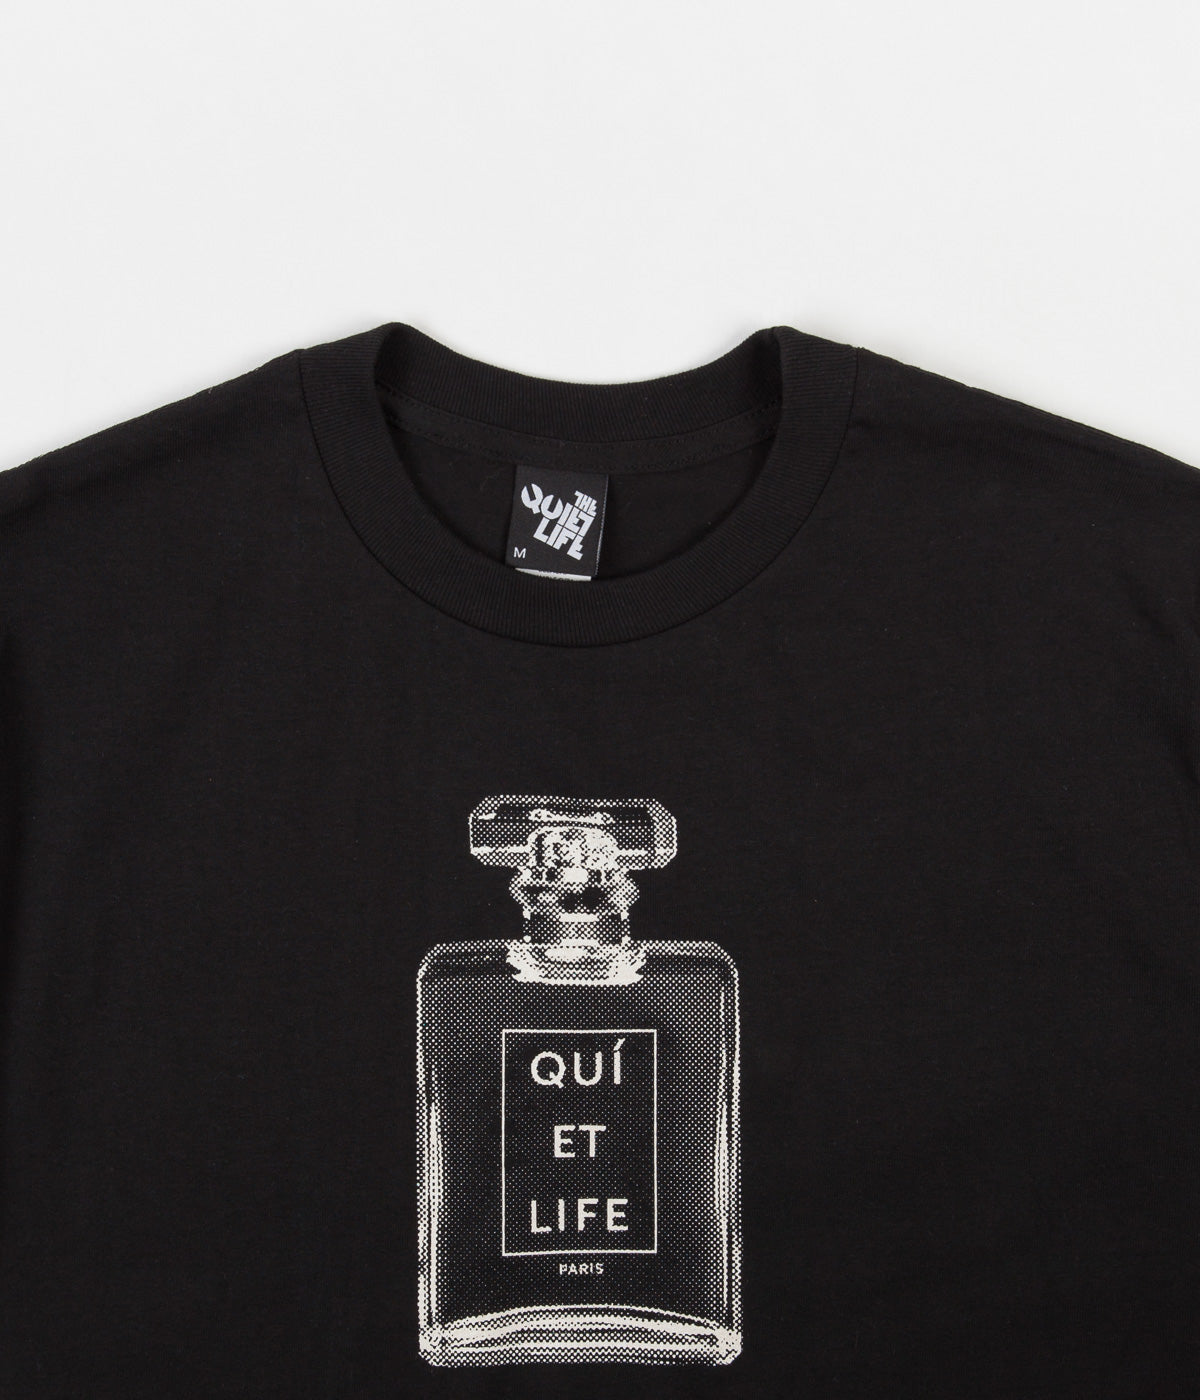 The Quiet Life Paris T-Shirt - Black